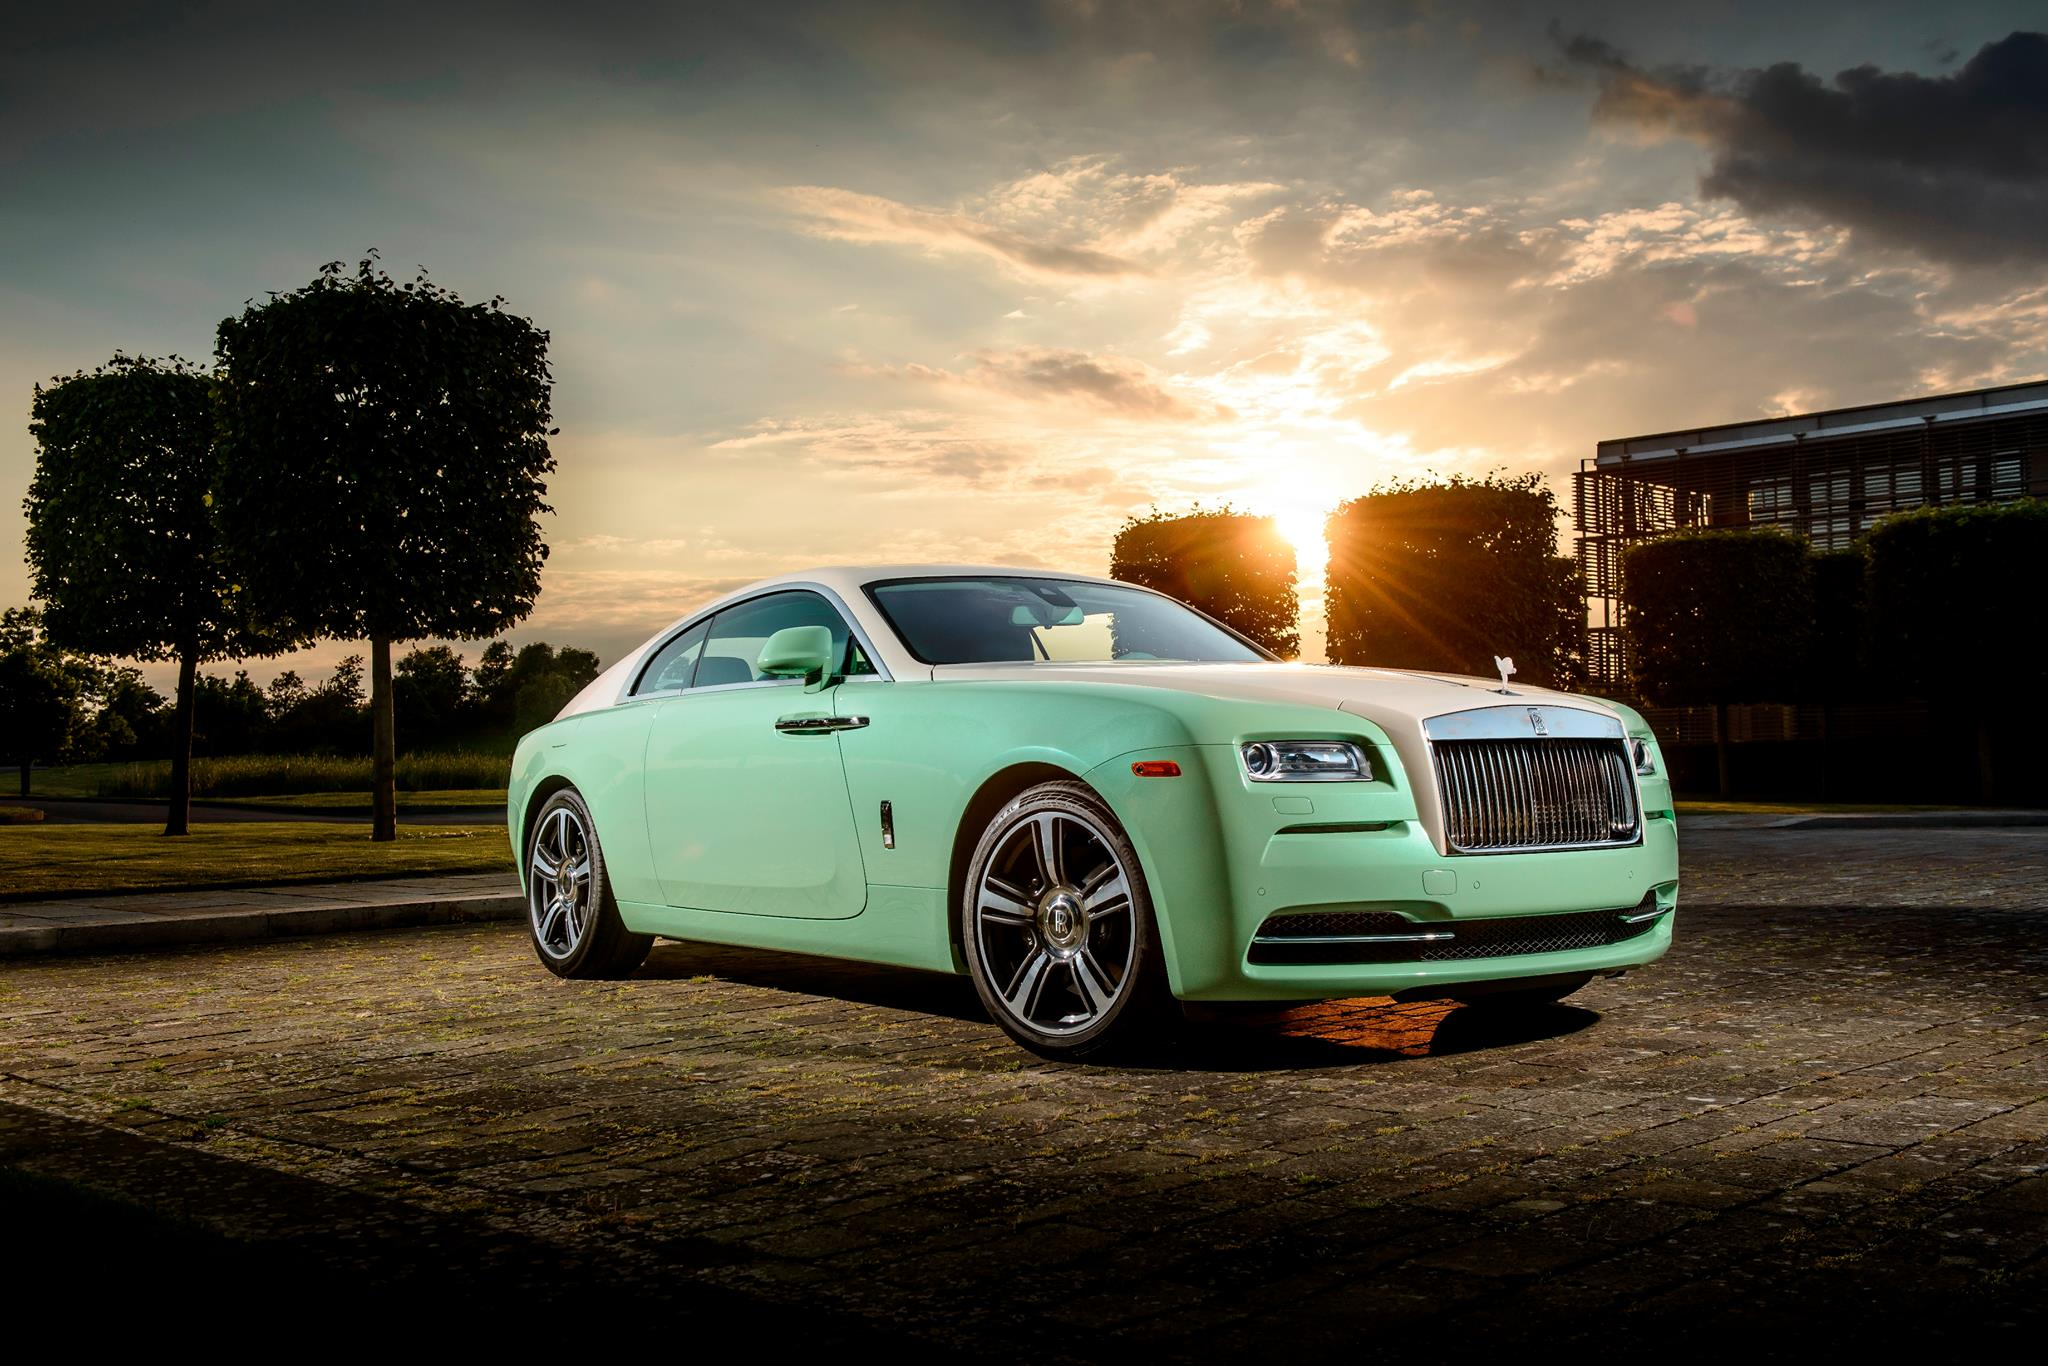 Rolls Royce Wraith For Sale >> Michael Fux's Rolls-Royce Wraith is remarkable